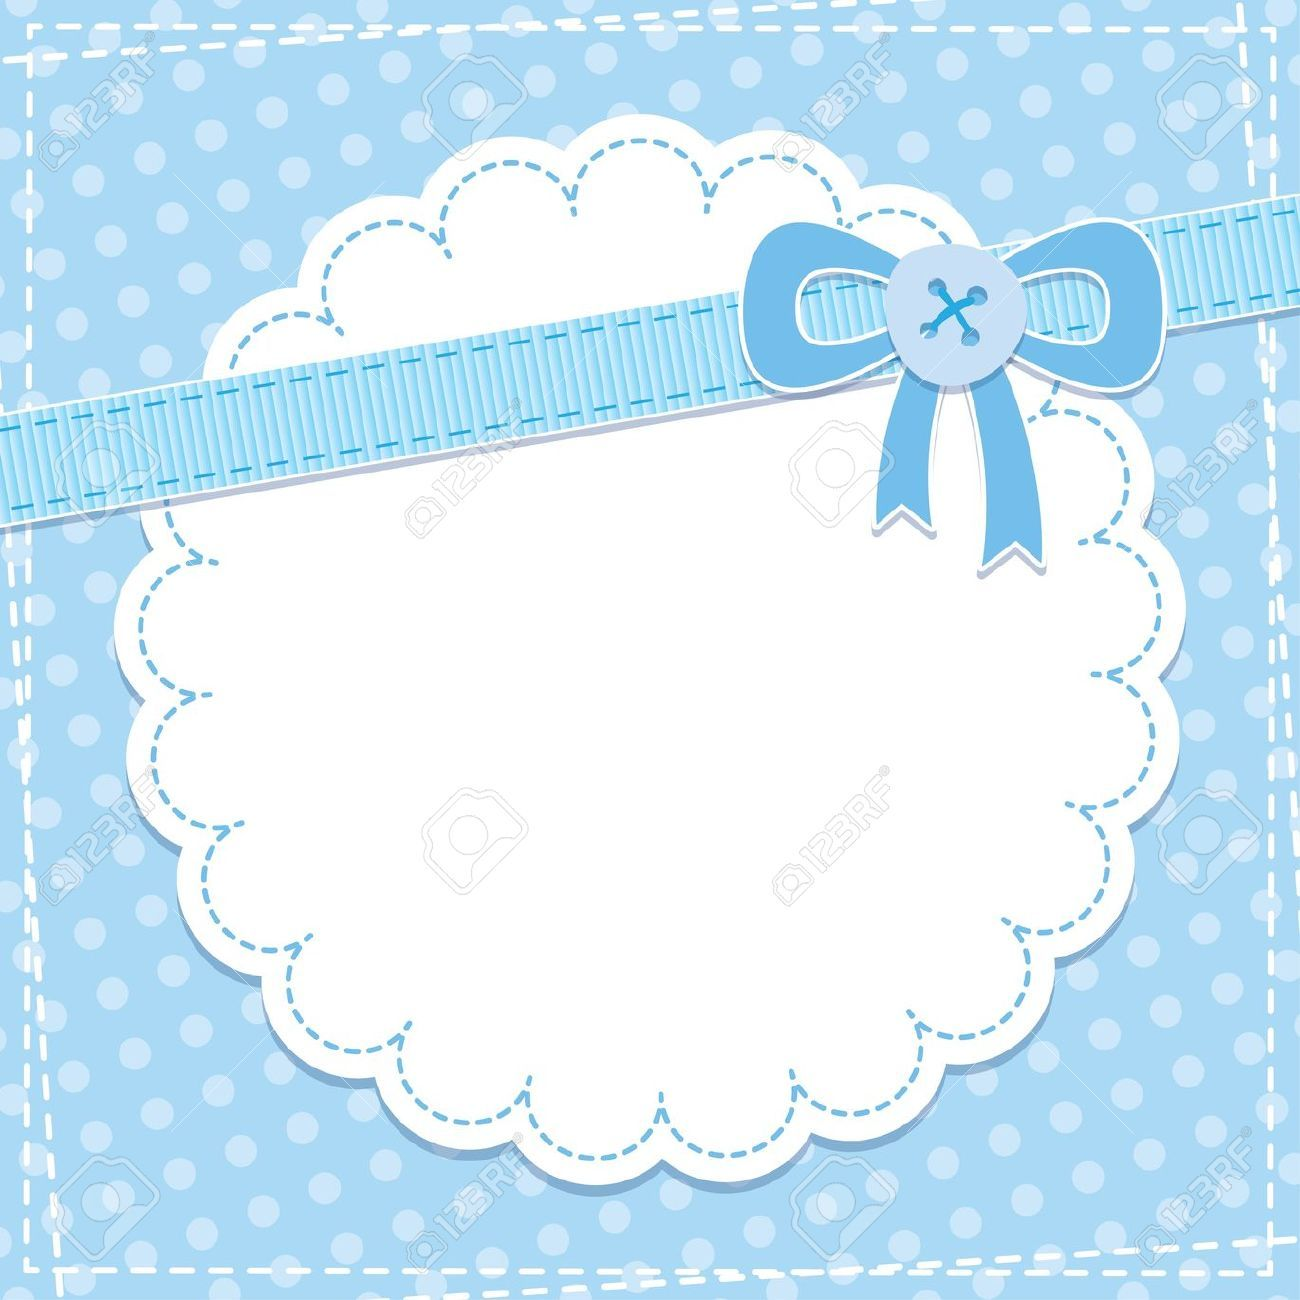 Baby Shower Invitation Images, Stock Pictures, Royalty Free Baby ...